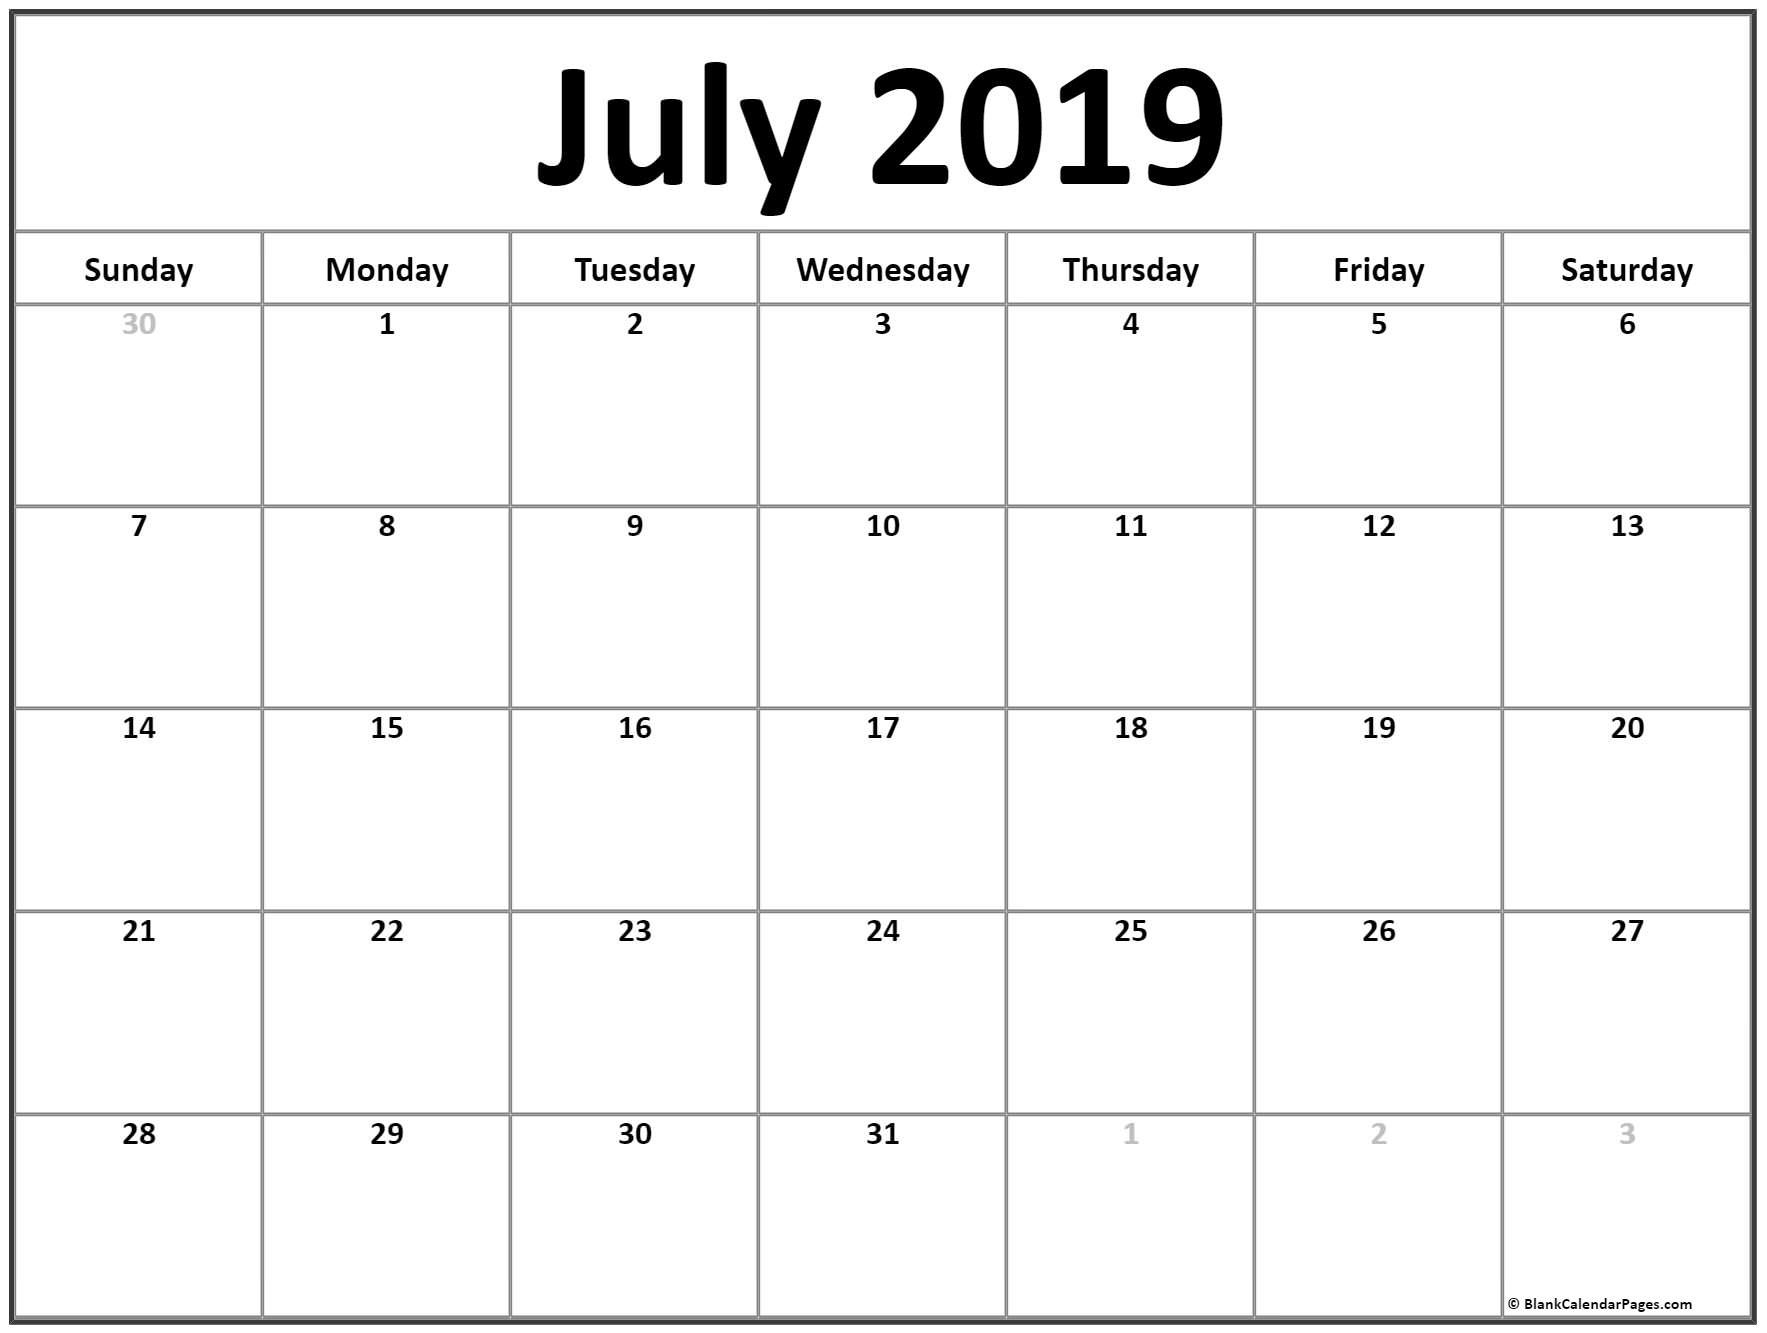 July 2019 Calendar | Free Printable Monthly Calendars Calendar 2019 Pages